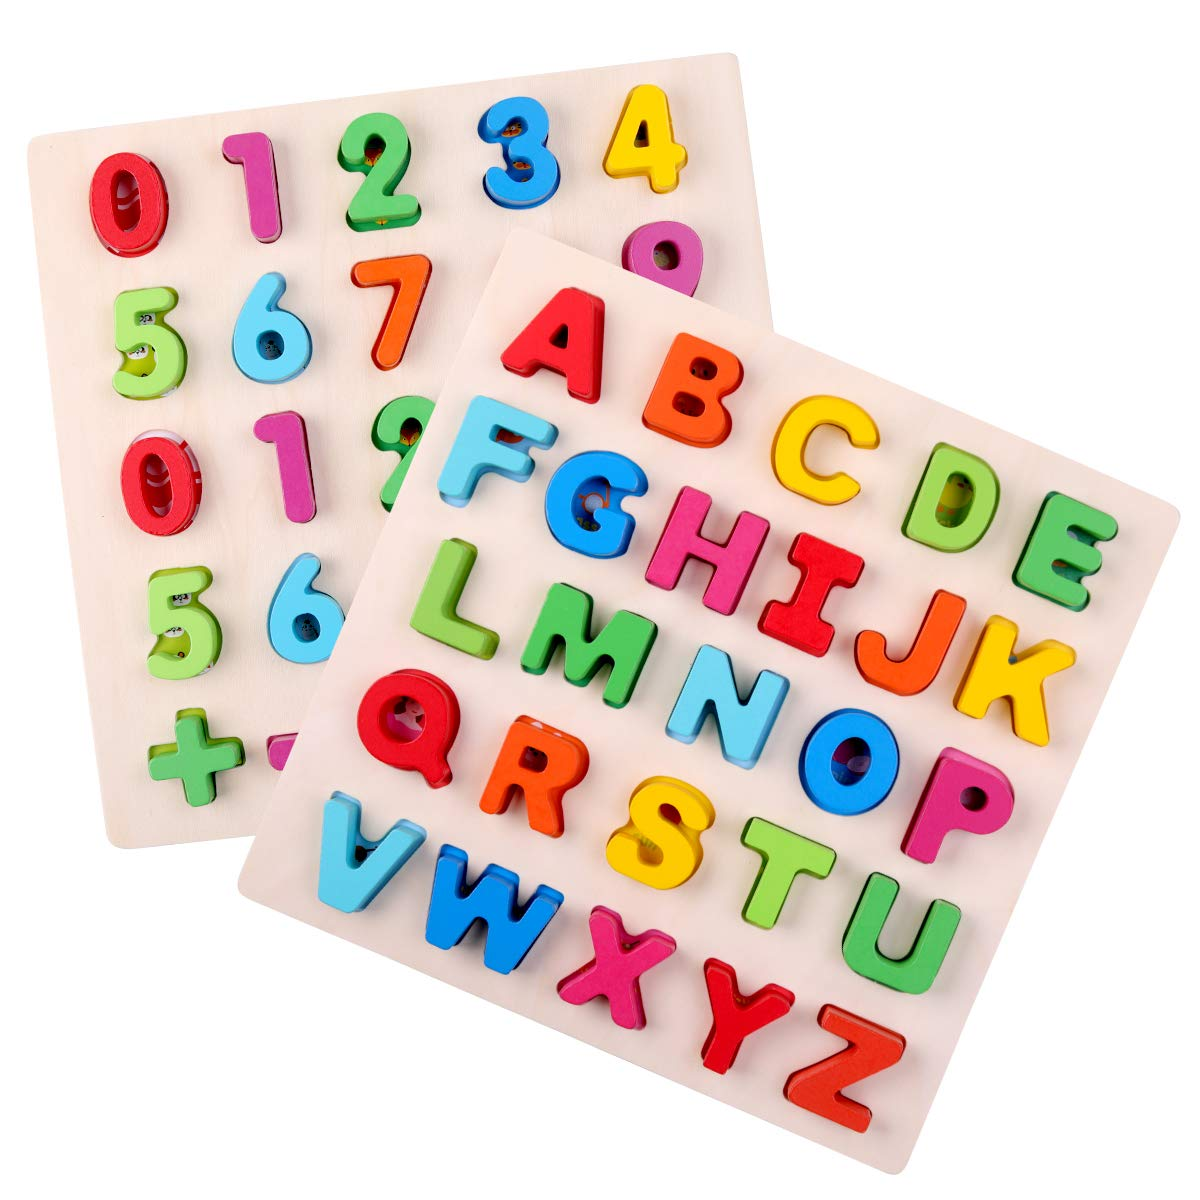 GEMEM Wooden Alphabet Puzzles Set Upper Case Letter ABC Puzzle and Number Learning Blocks Board Toys for Toddlers Preschools Age Above 3 Year Old Pack of 2